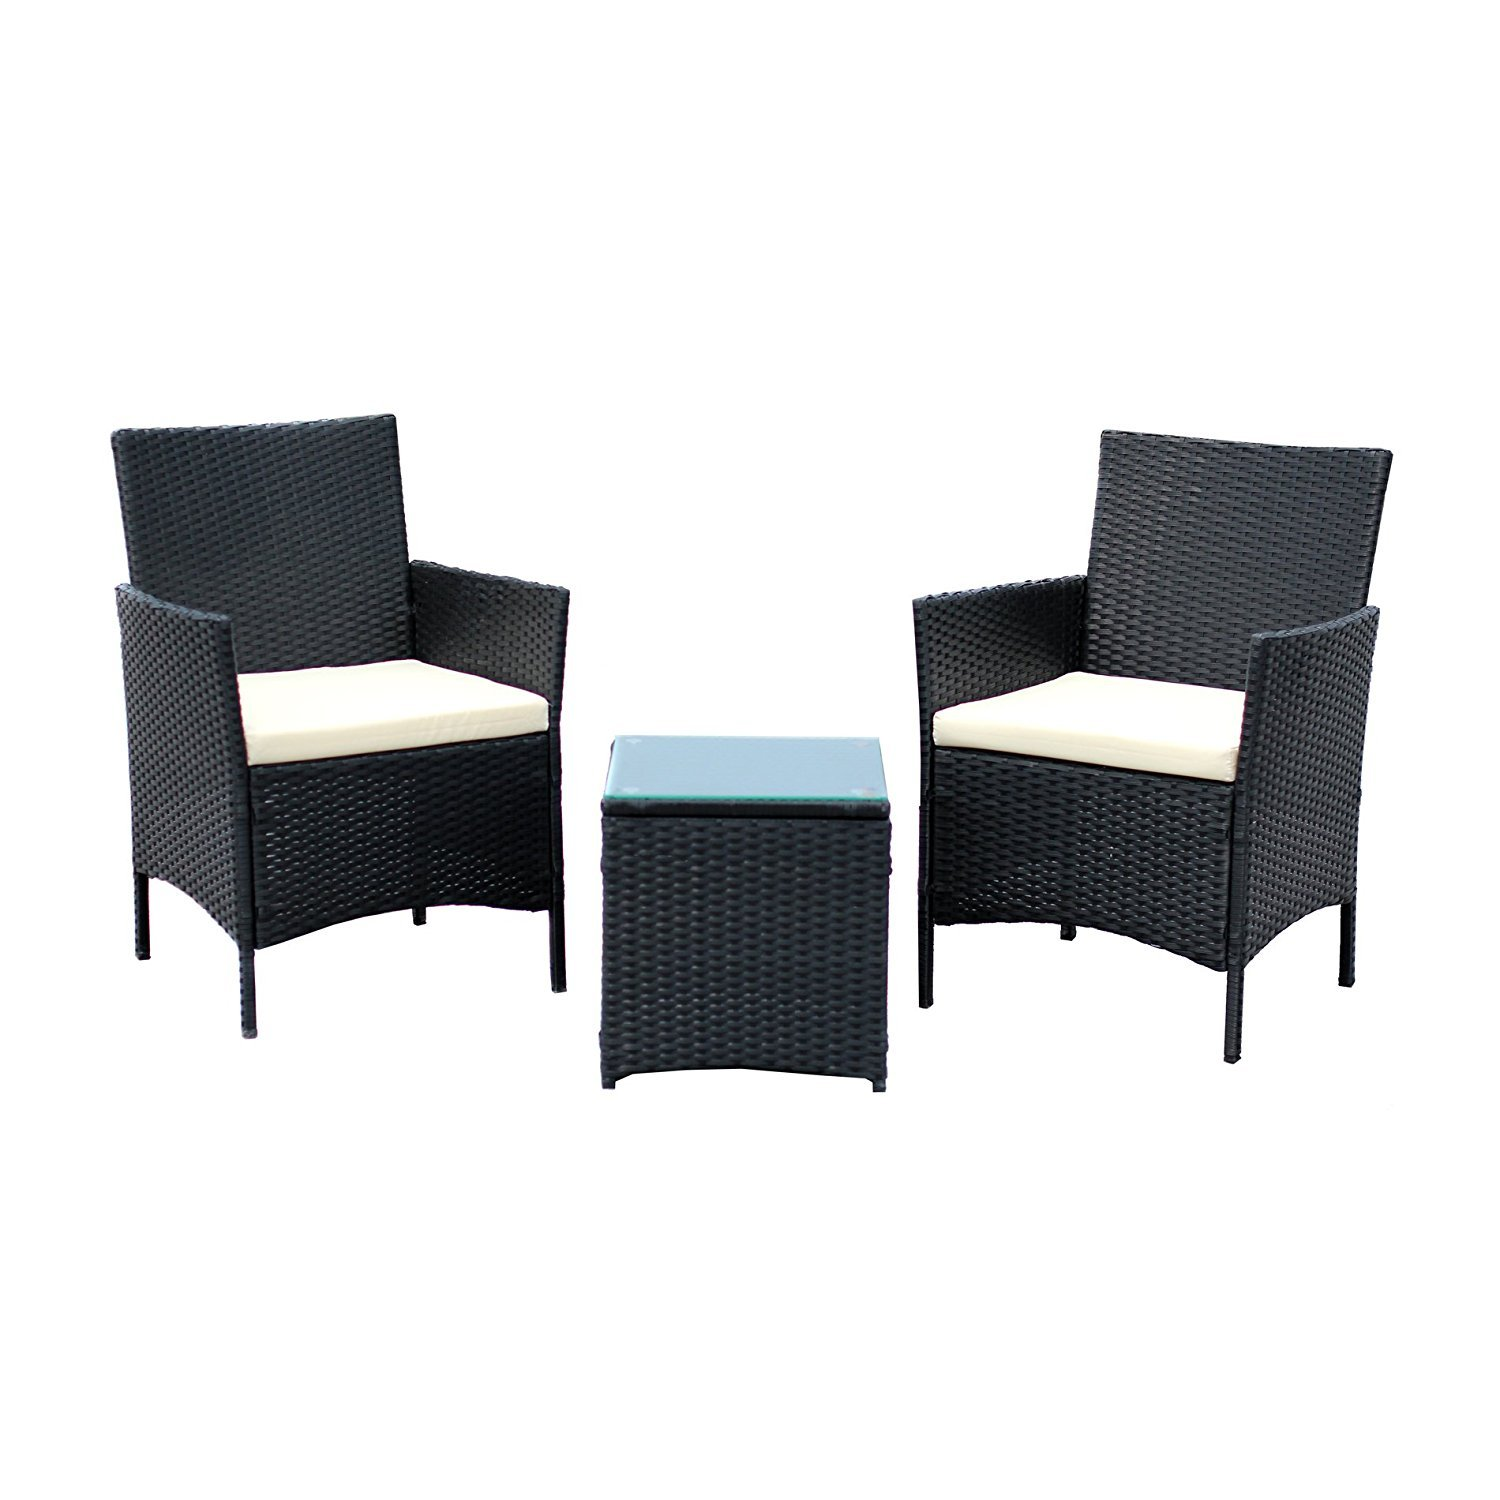 ebs 3 st ck rattan outdoor garten m bel terrasse set. Black Bedroom Furniture Sets. Home Design Ideas